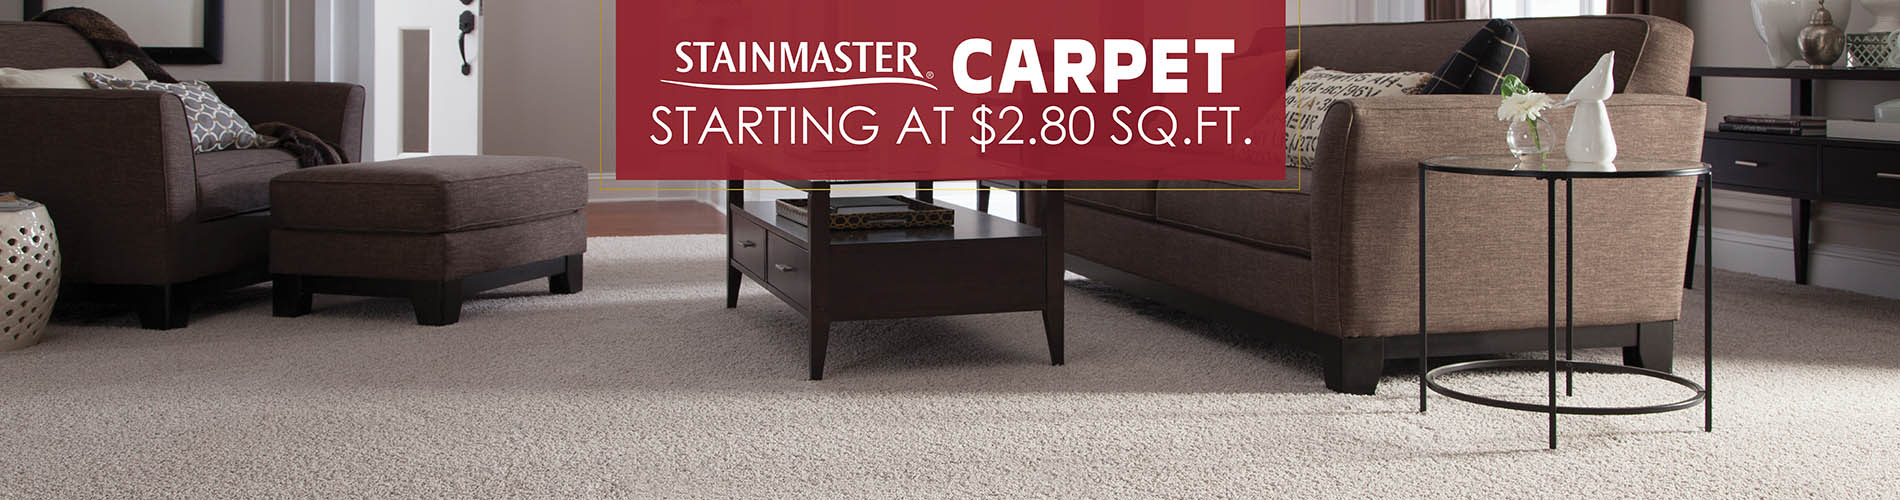 Stainmaster carpet on sale starting at $2.80 sq.ft.